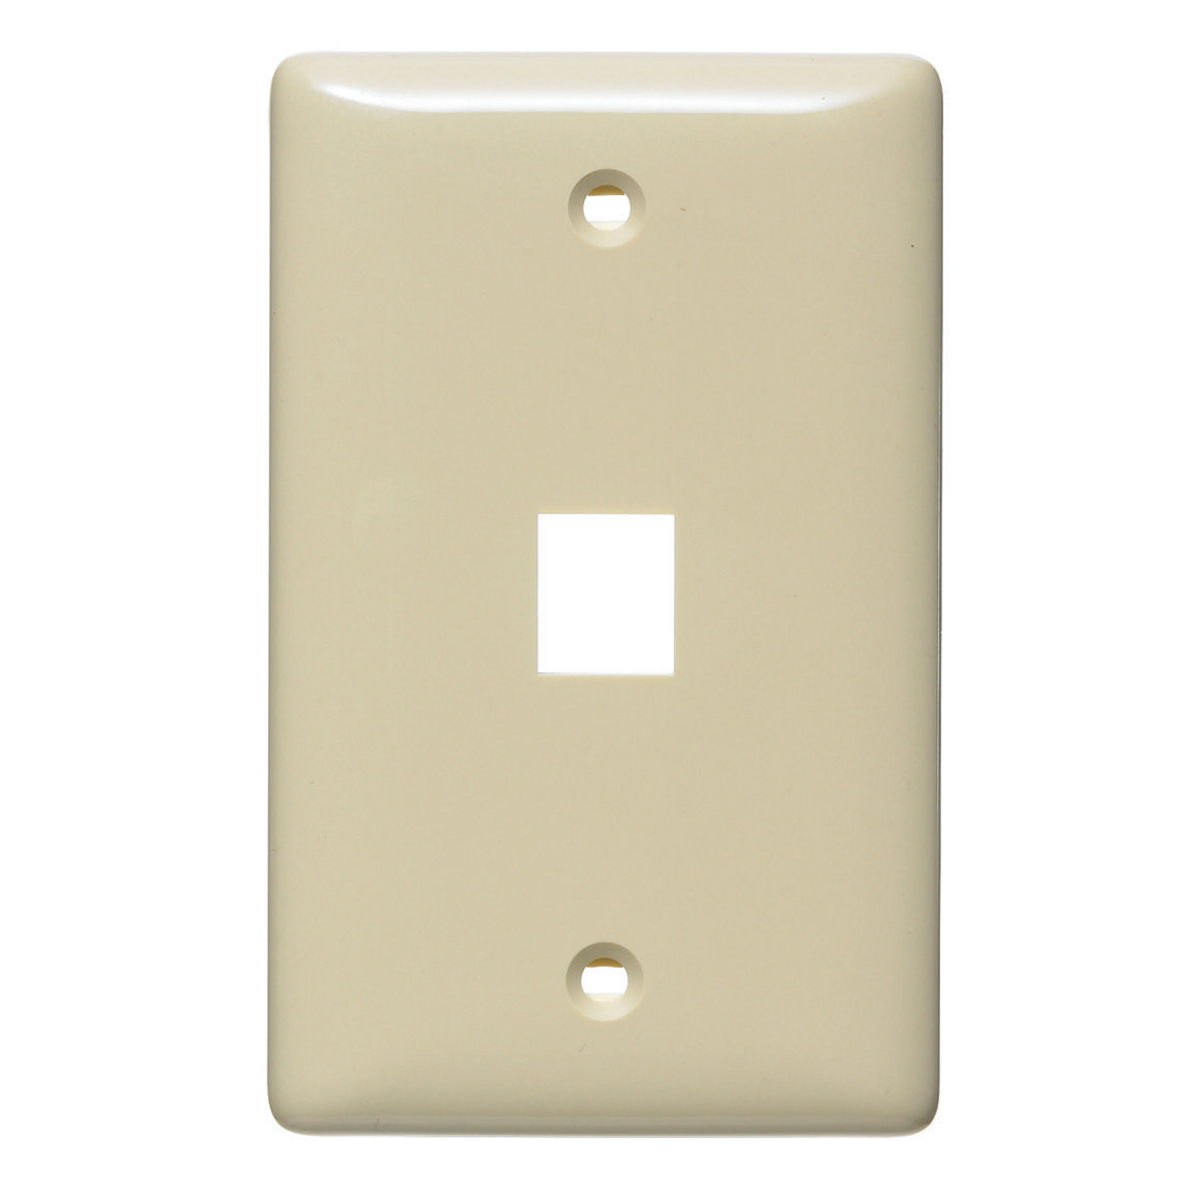 Hubbell NSP11I 1-Gang Ivory Thermoplastic Standard 1-Port Data Communication Face Plate